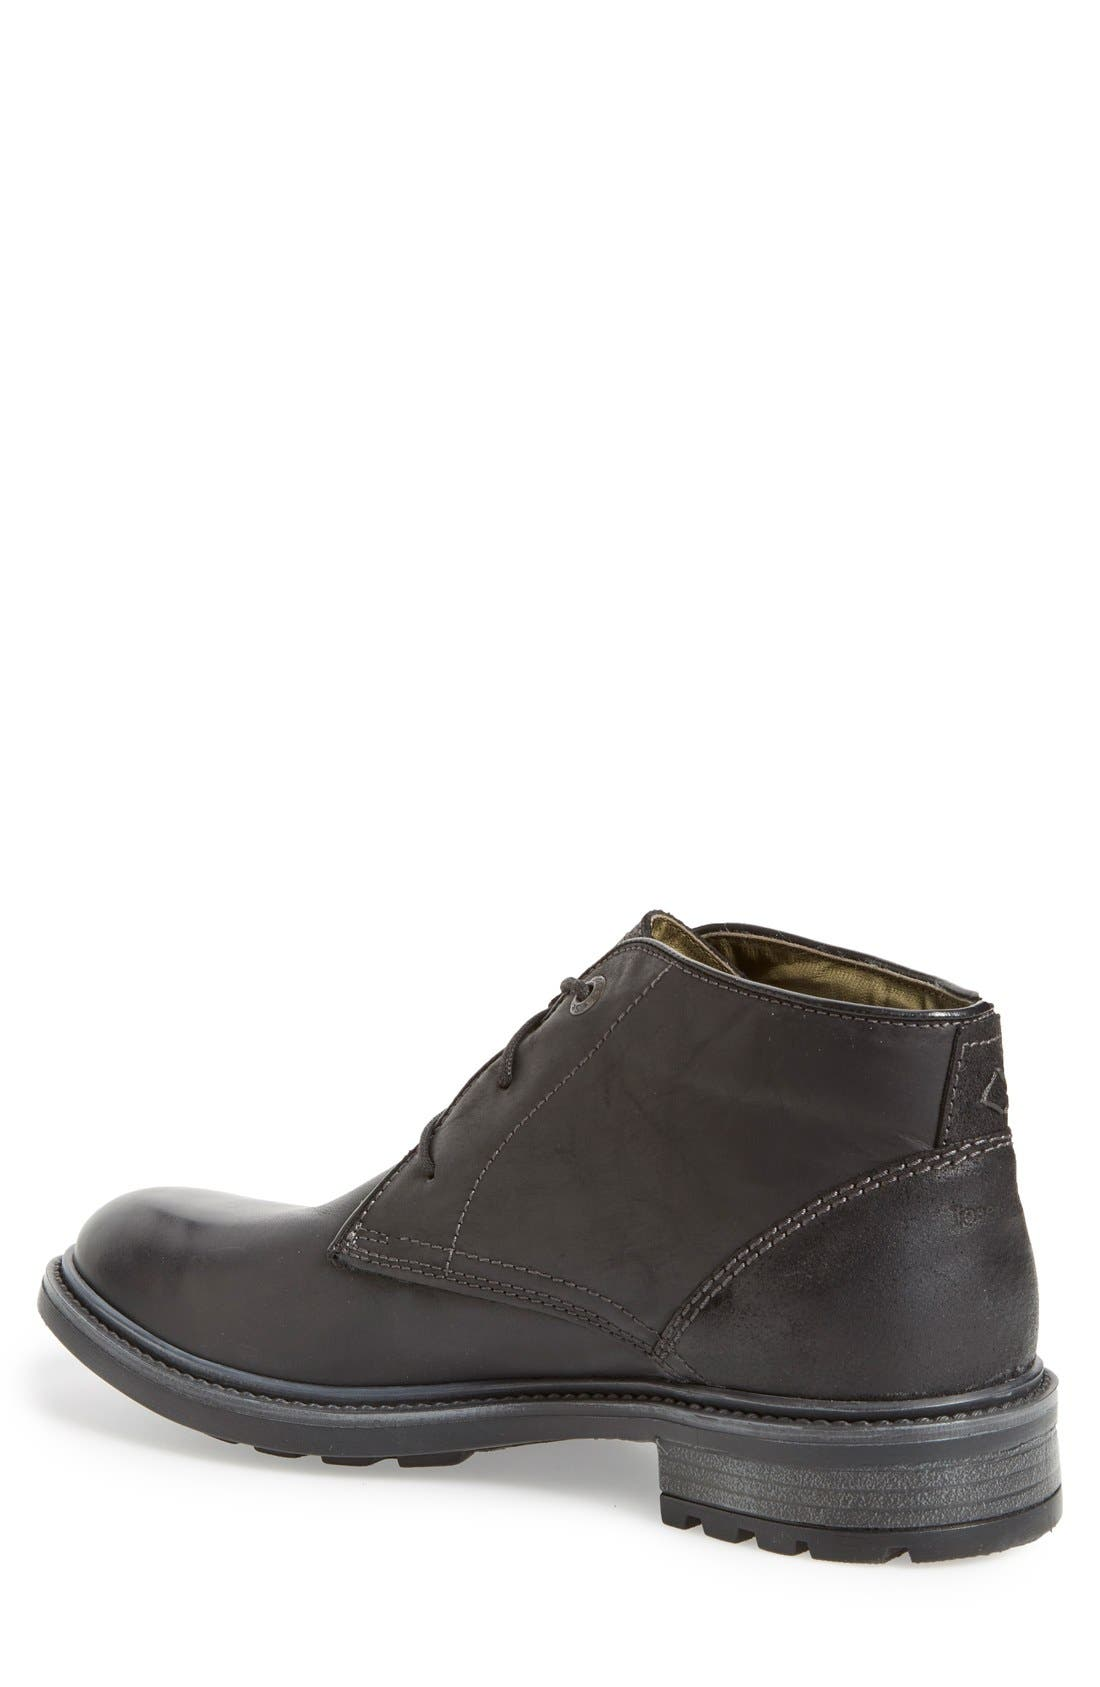 'Oscar 11' Chukka Boot,                             Alternate thumbnail 6, color,                             BLACK